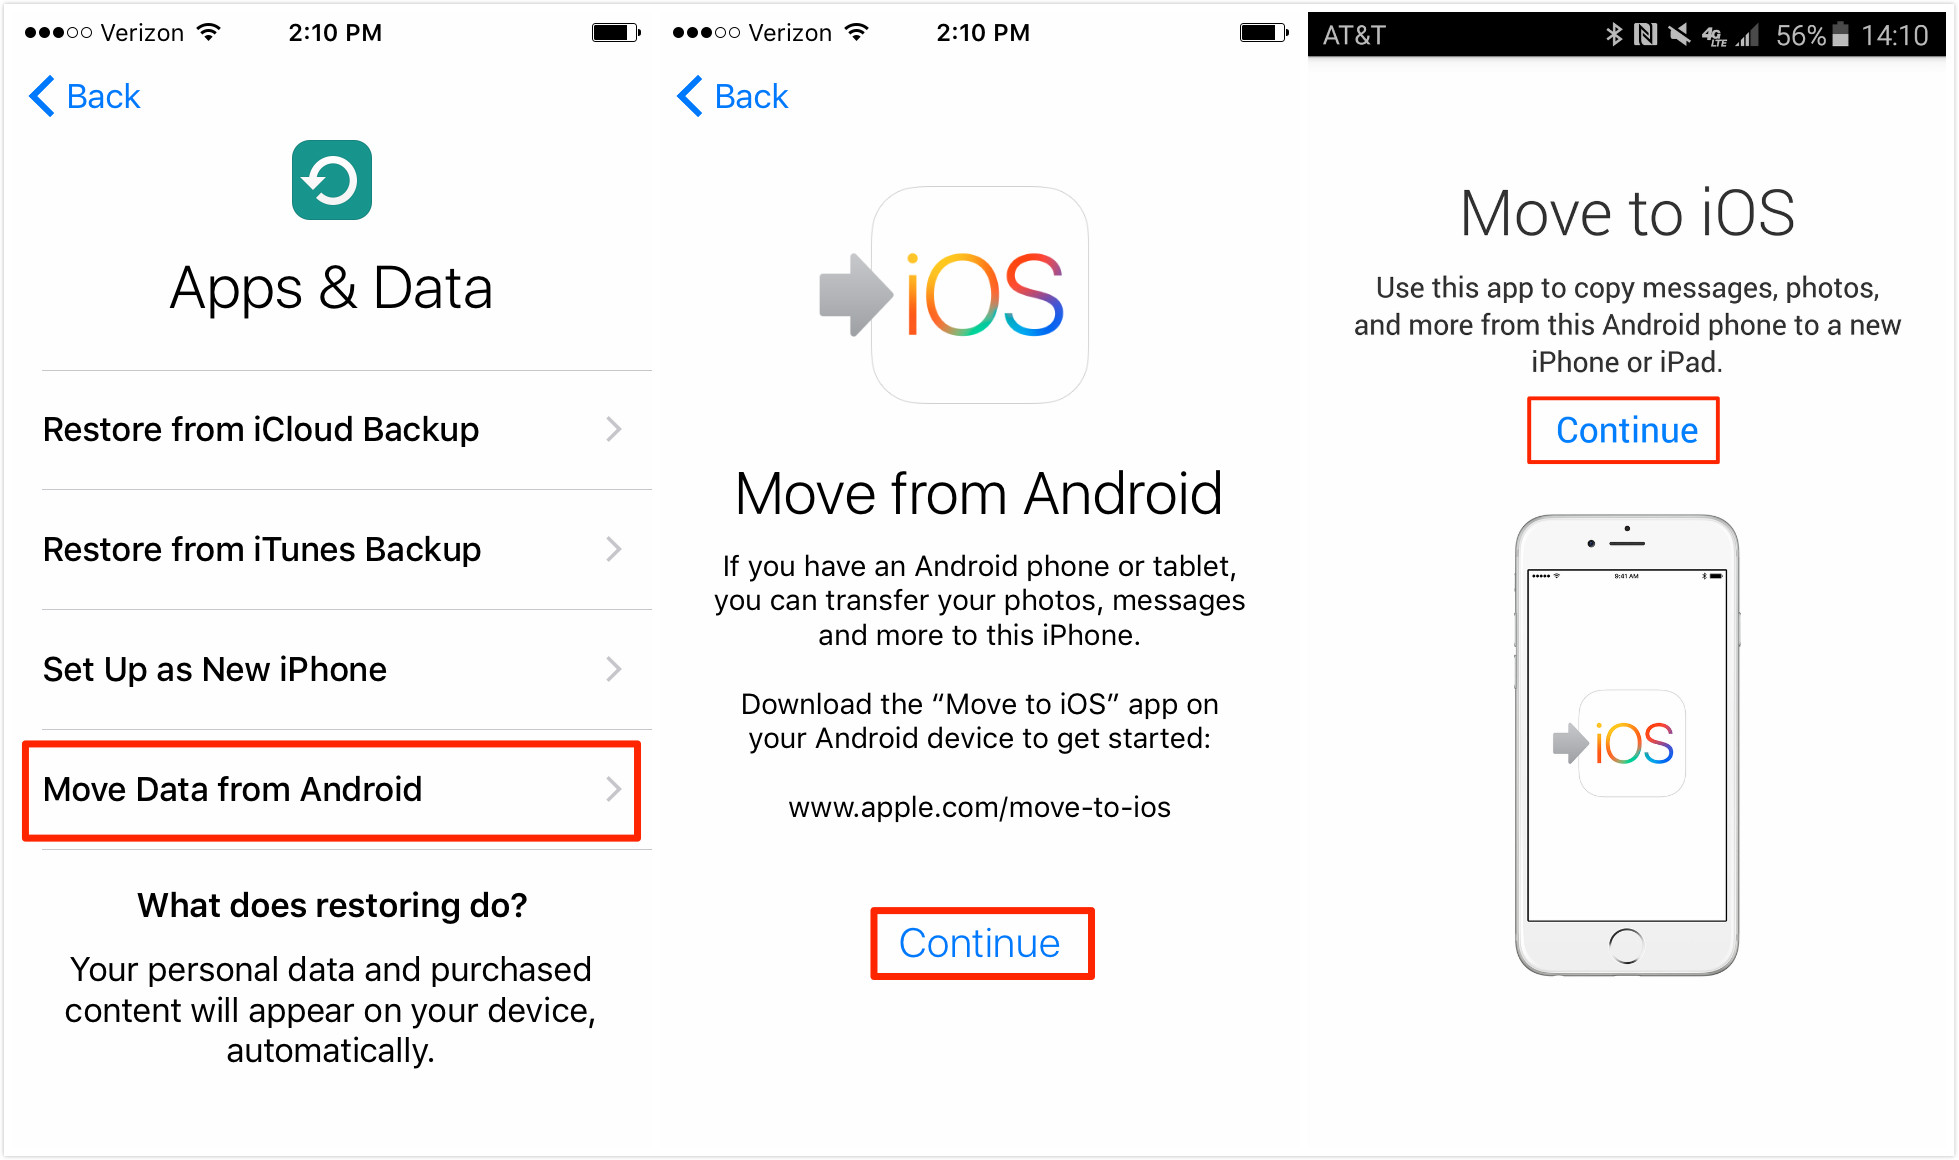 Switching from Android to iPhone via Move to iOS